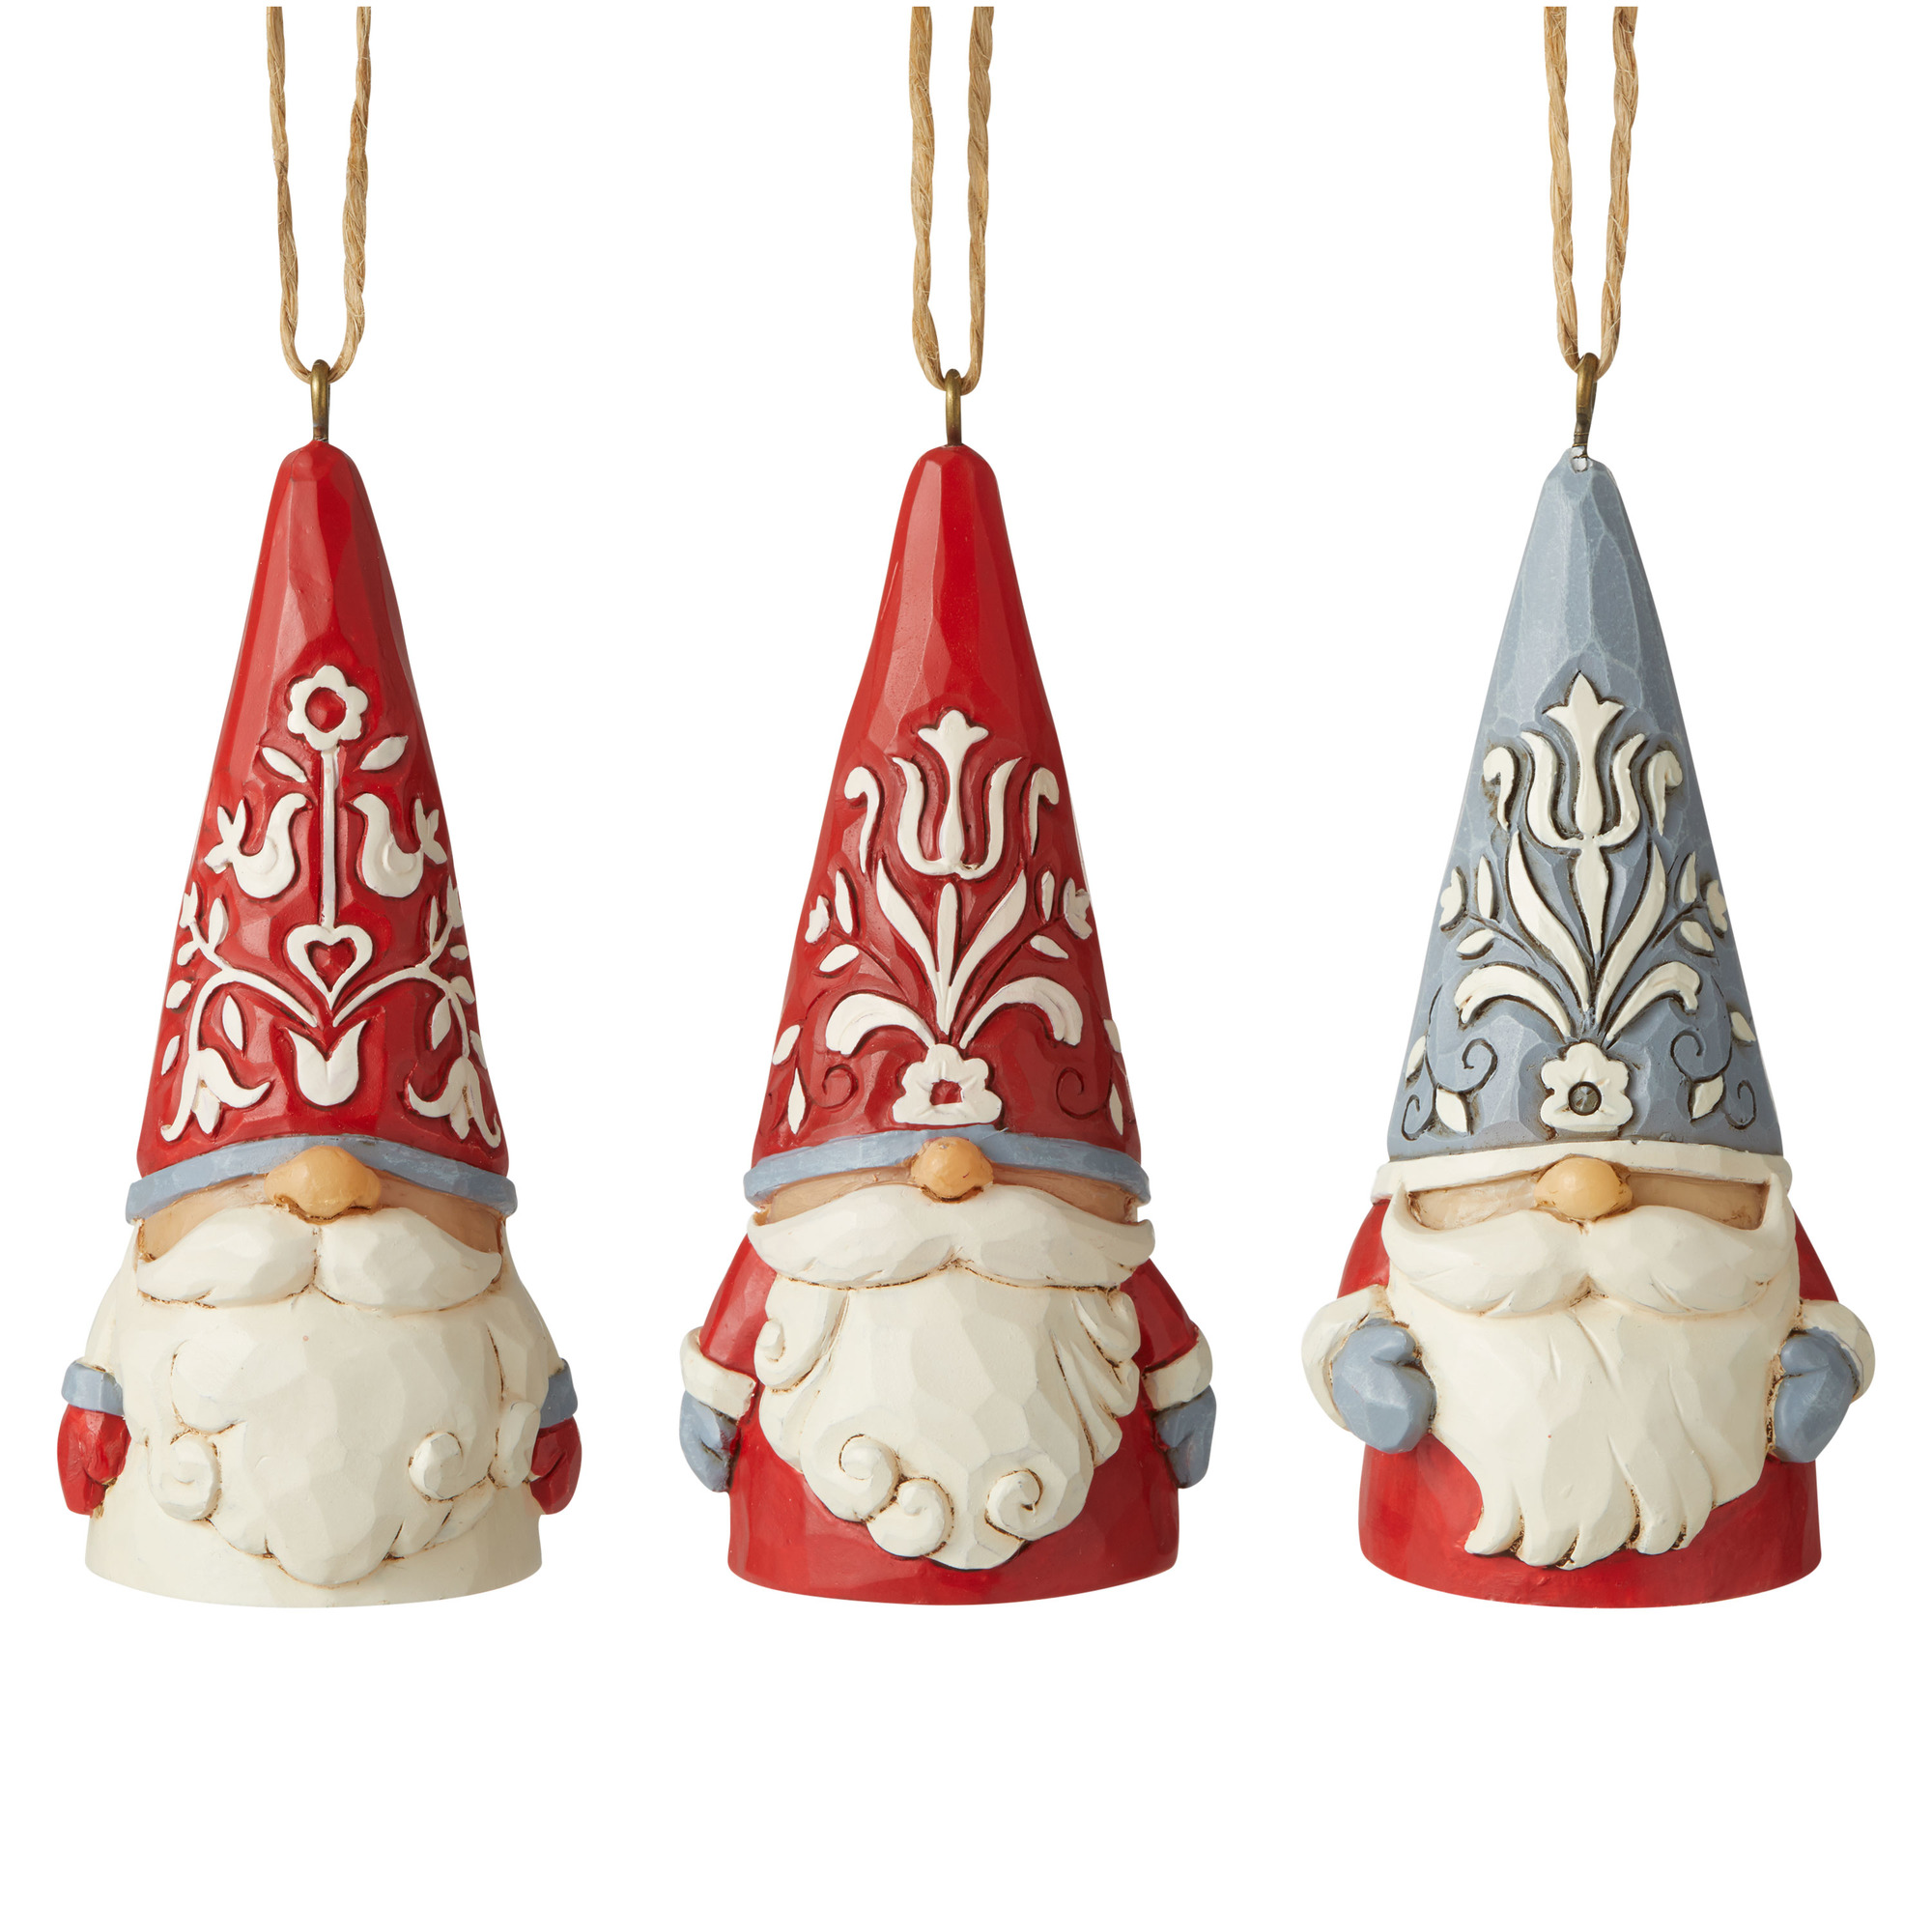 Jim Shore Nordic Noel Gnome Christmas Ornament Set Free Shipping Christmas Ornament Sets Jim Shore Christmas Ornament Set